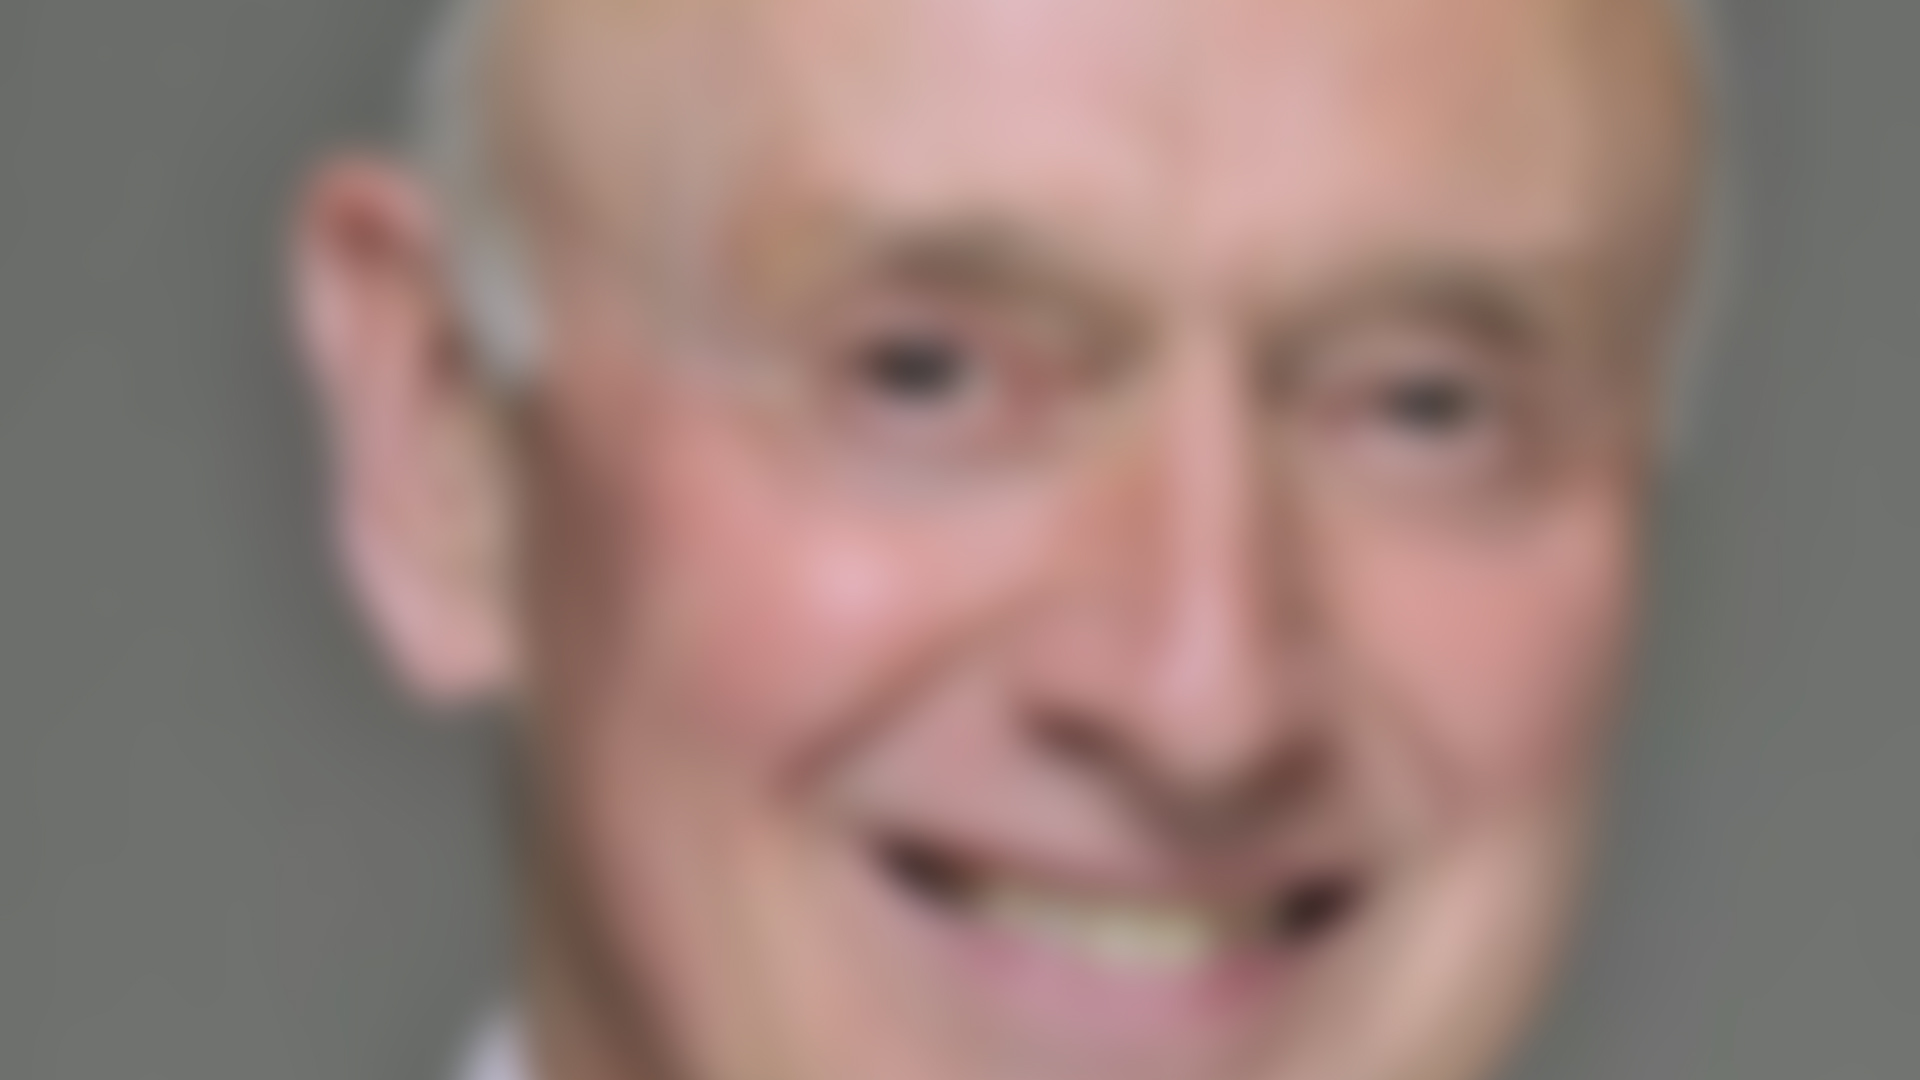 Edwin Booth passes on the baton after seven successful years as Chair of the LEP